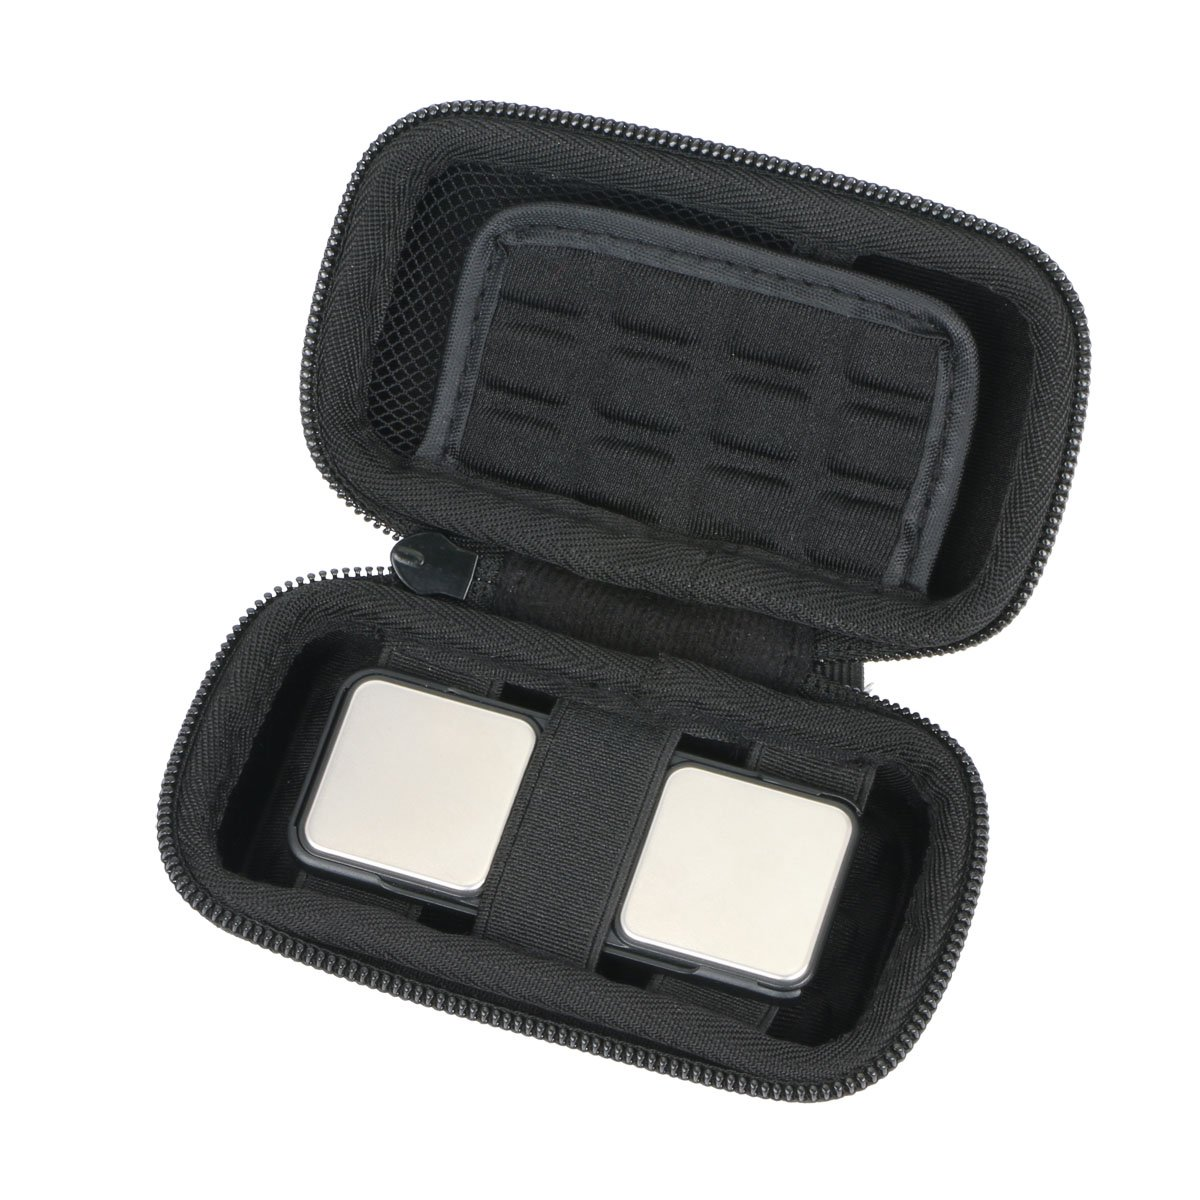 Hard Case for AliveCor Kardia Mobile ECG for Apple and Android Devices by Khanka (2)